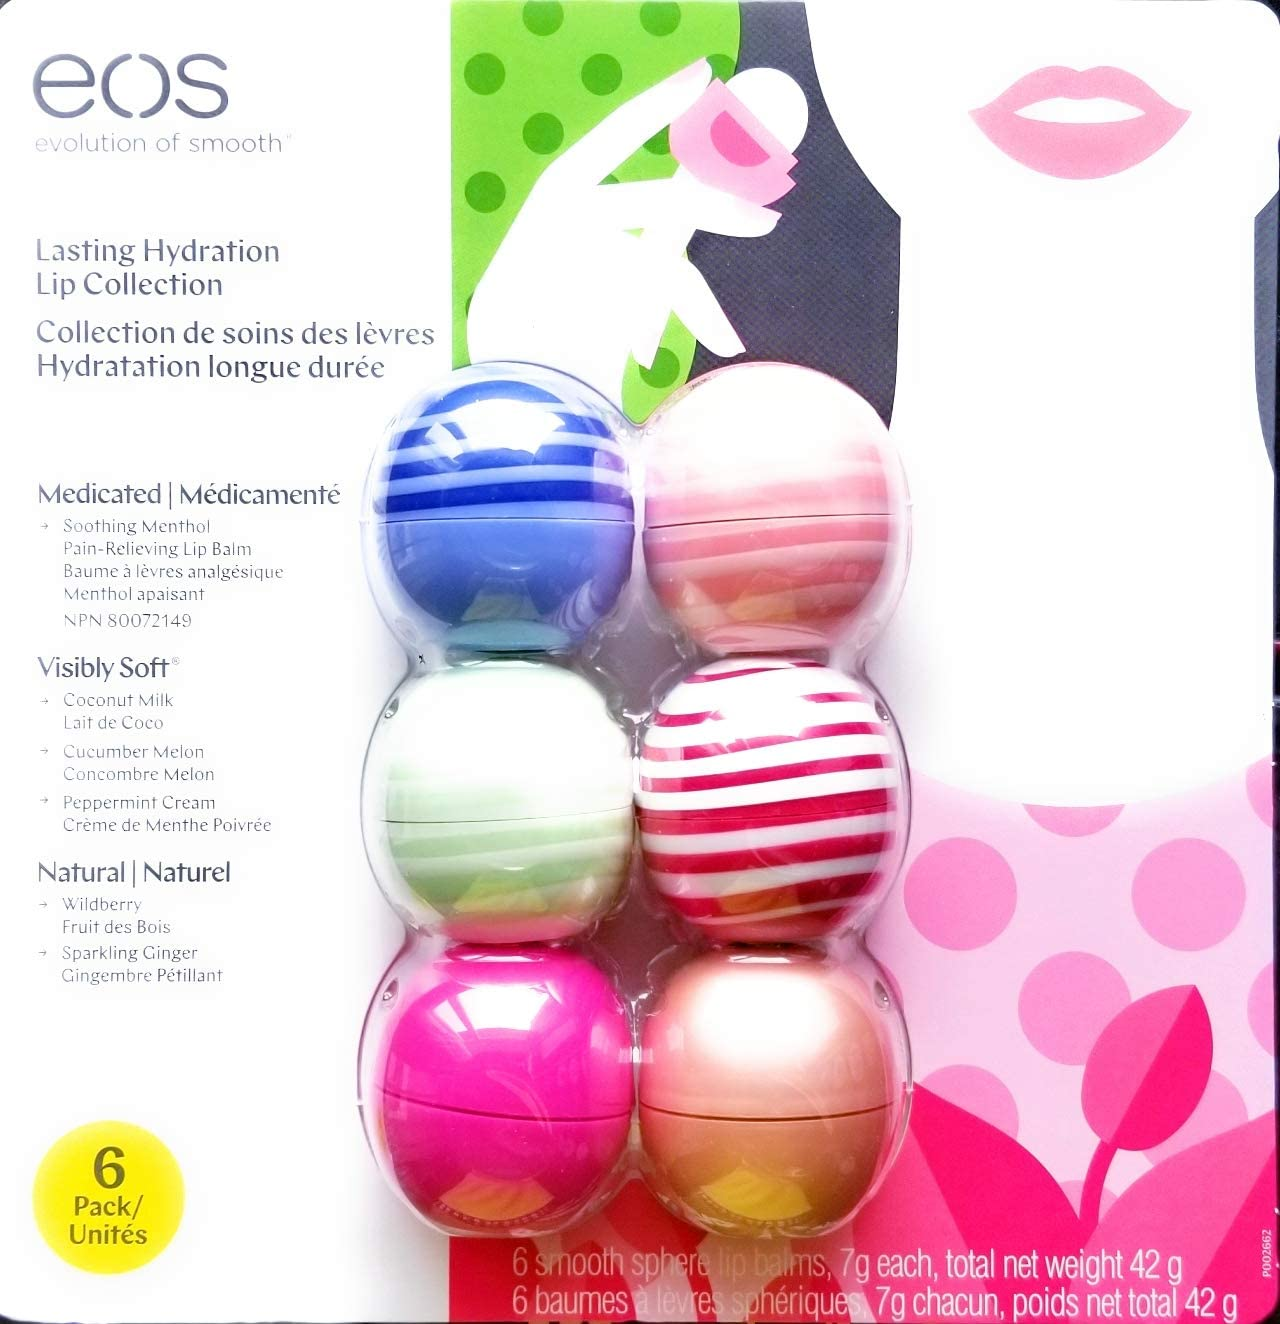 EOS Evolution Of Smooth Lip Balm Organic Lasting Hydration Lip Care Collection 6-Pack: Amazon.es: Belleza